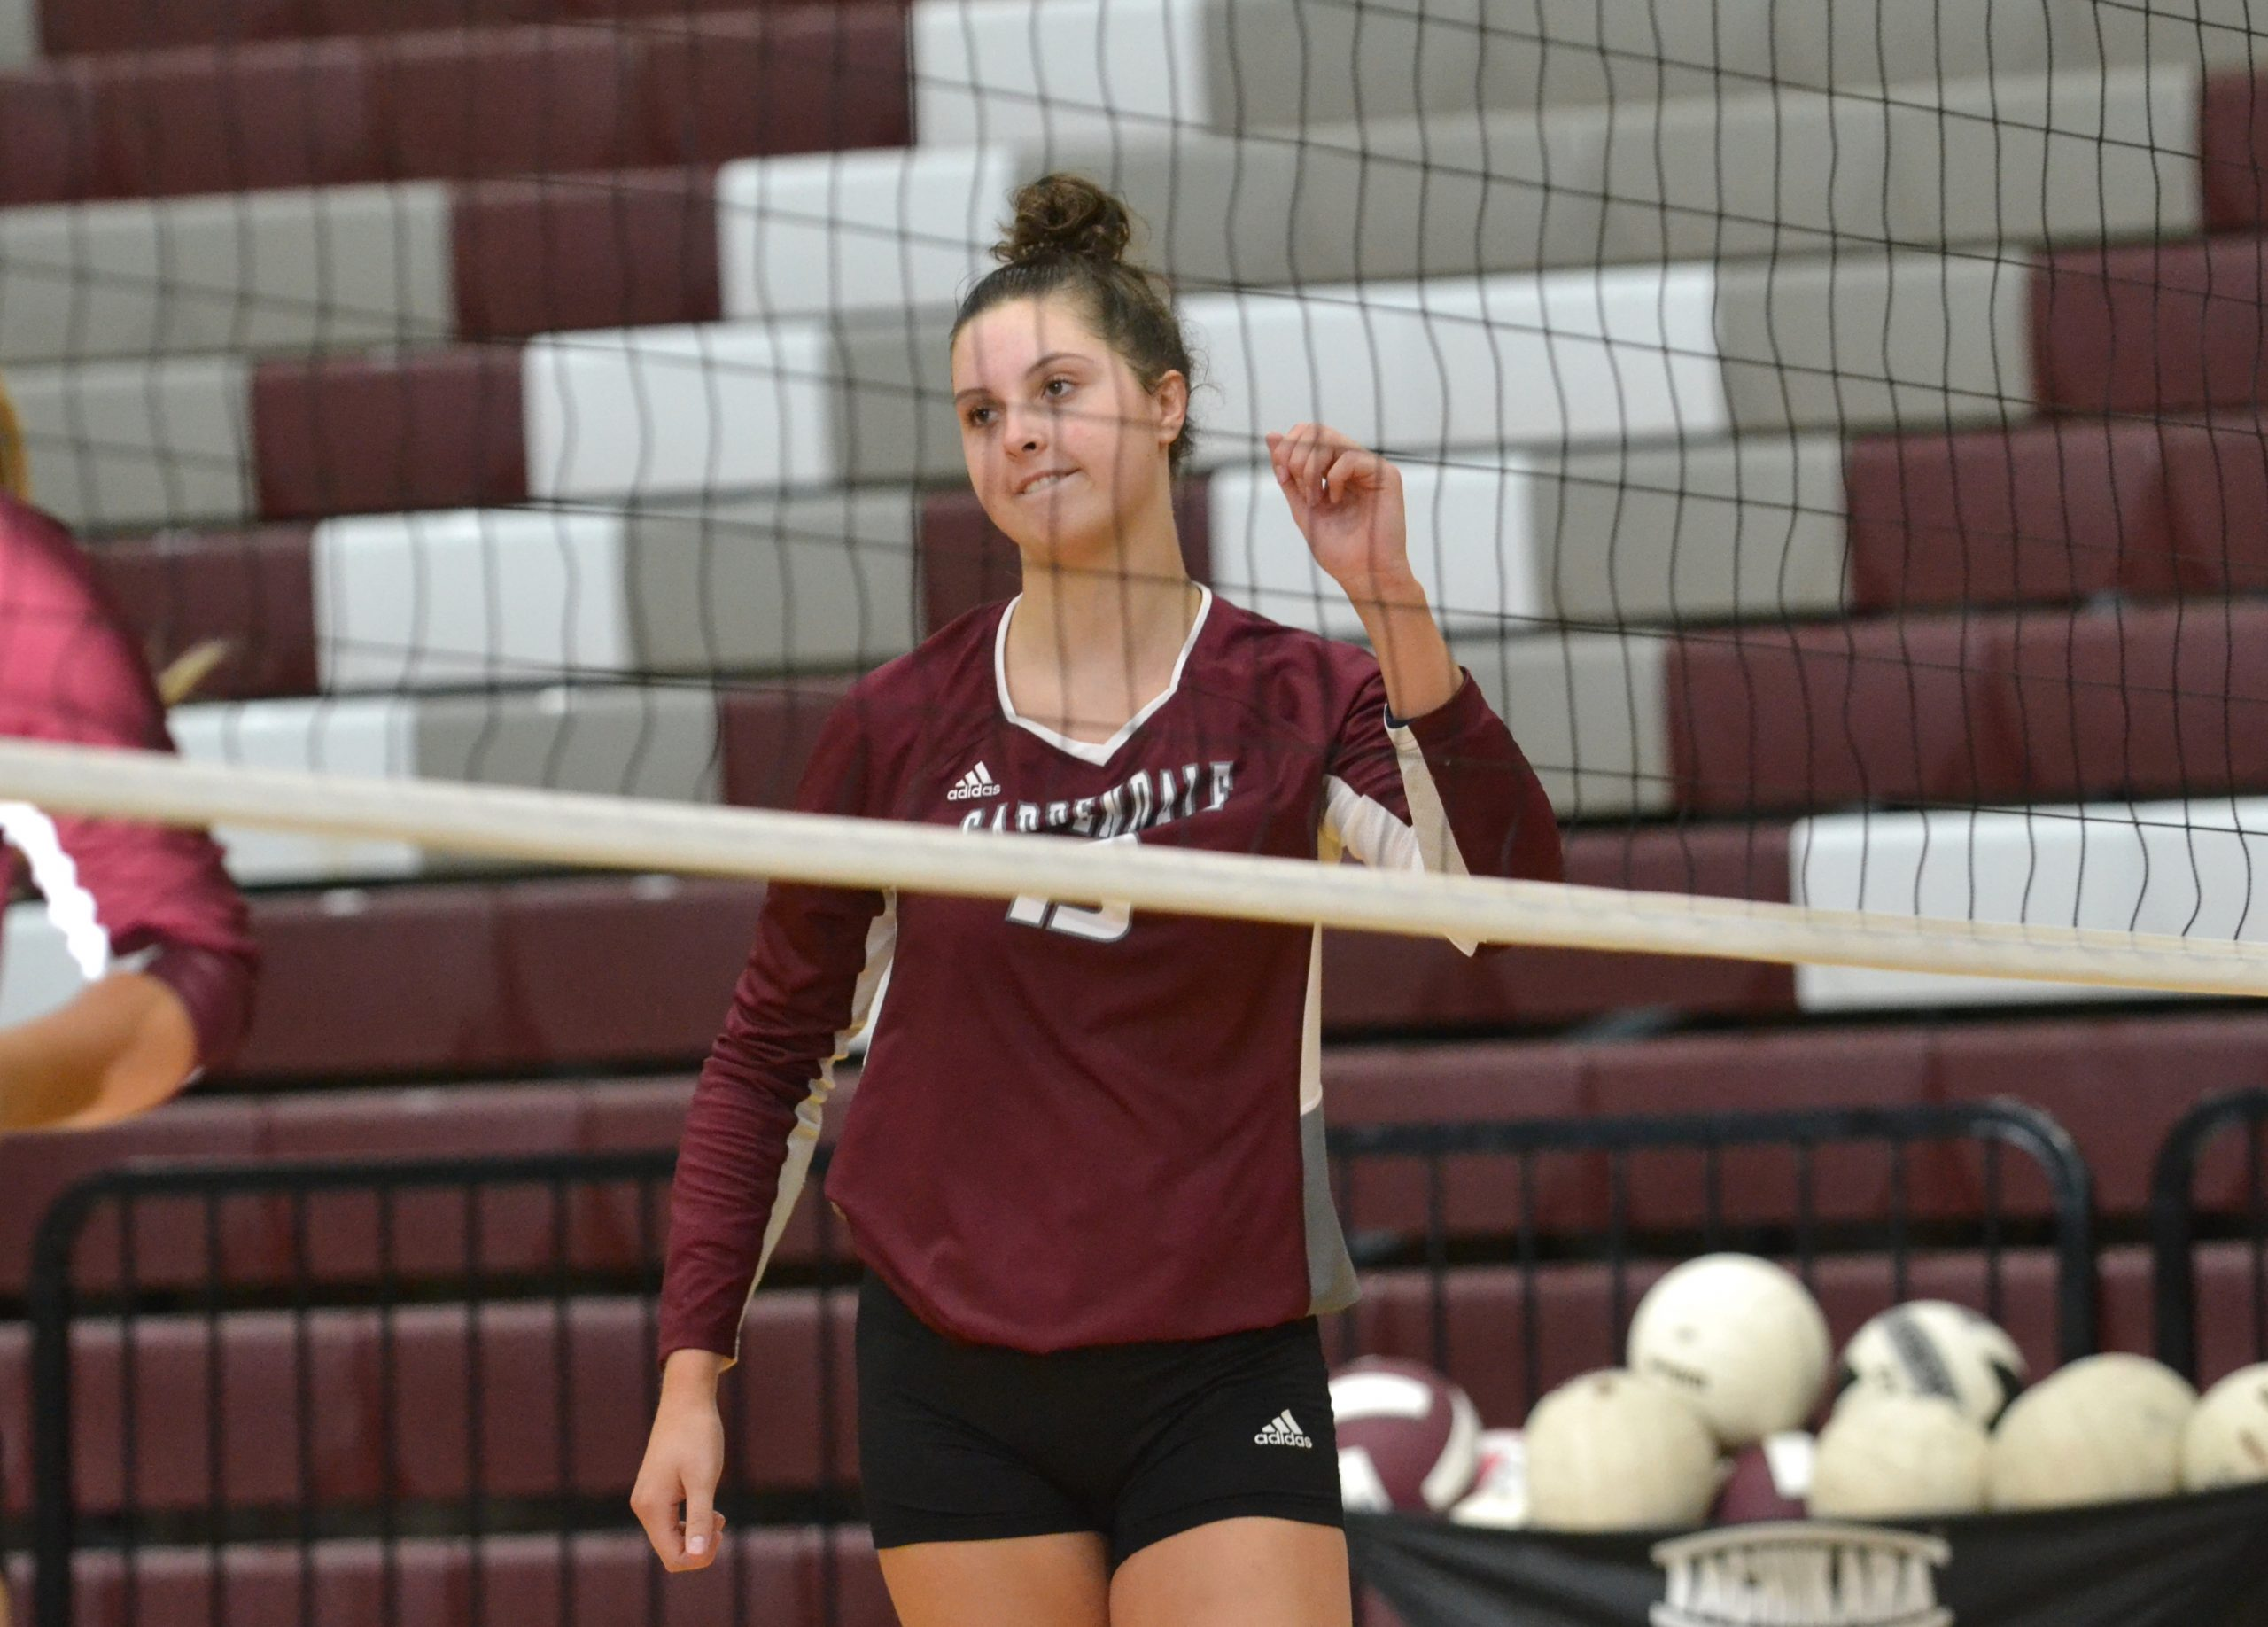 VOLLEYBALL: Beason leads Gardendale past Clay-Chalkville